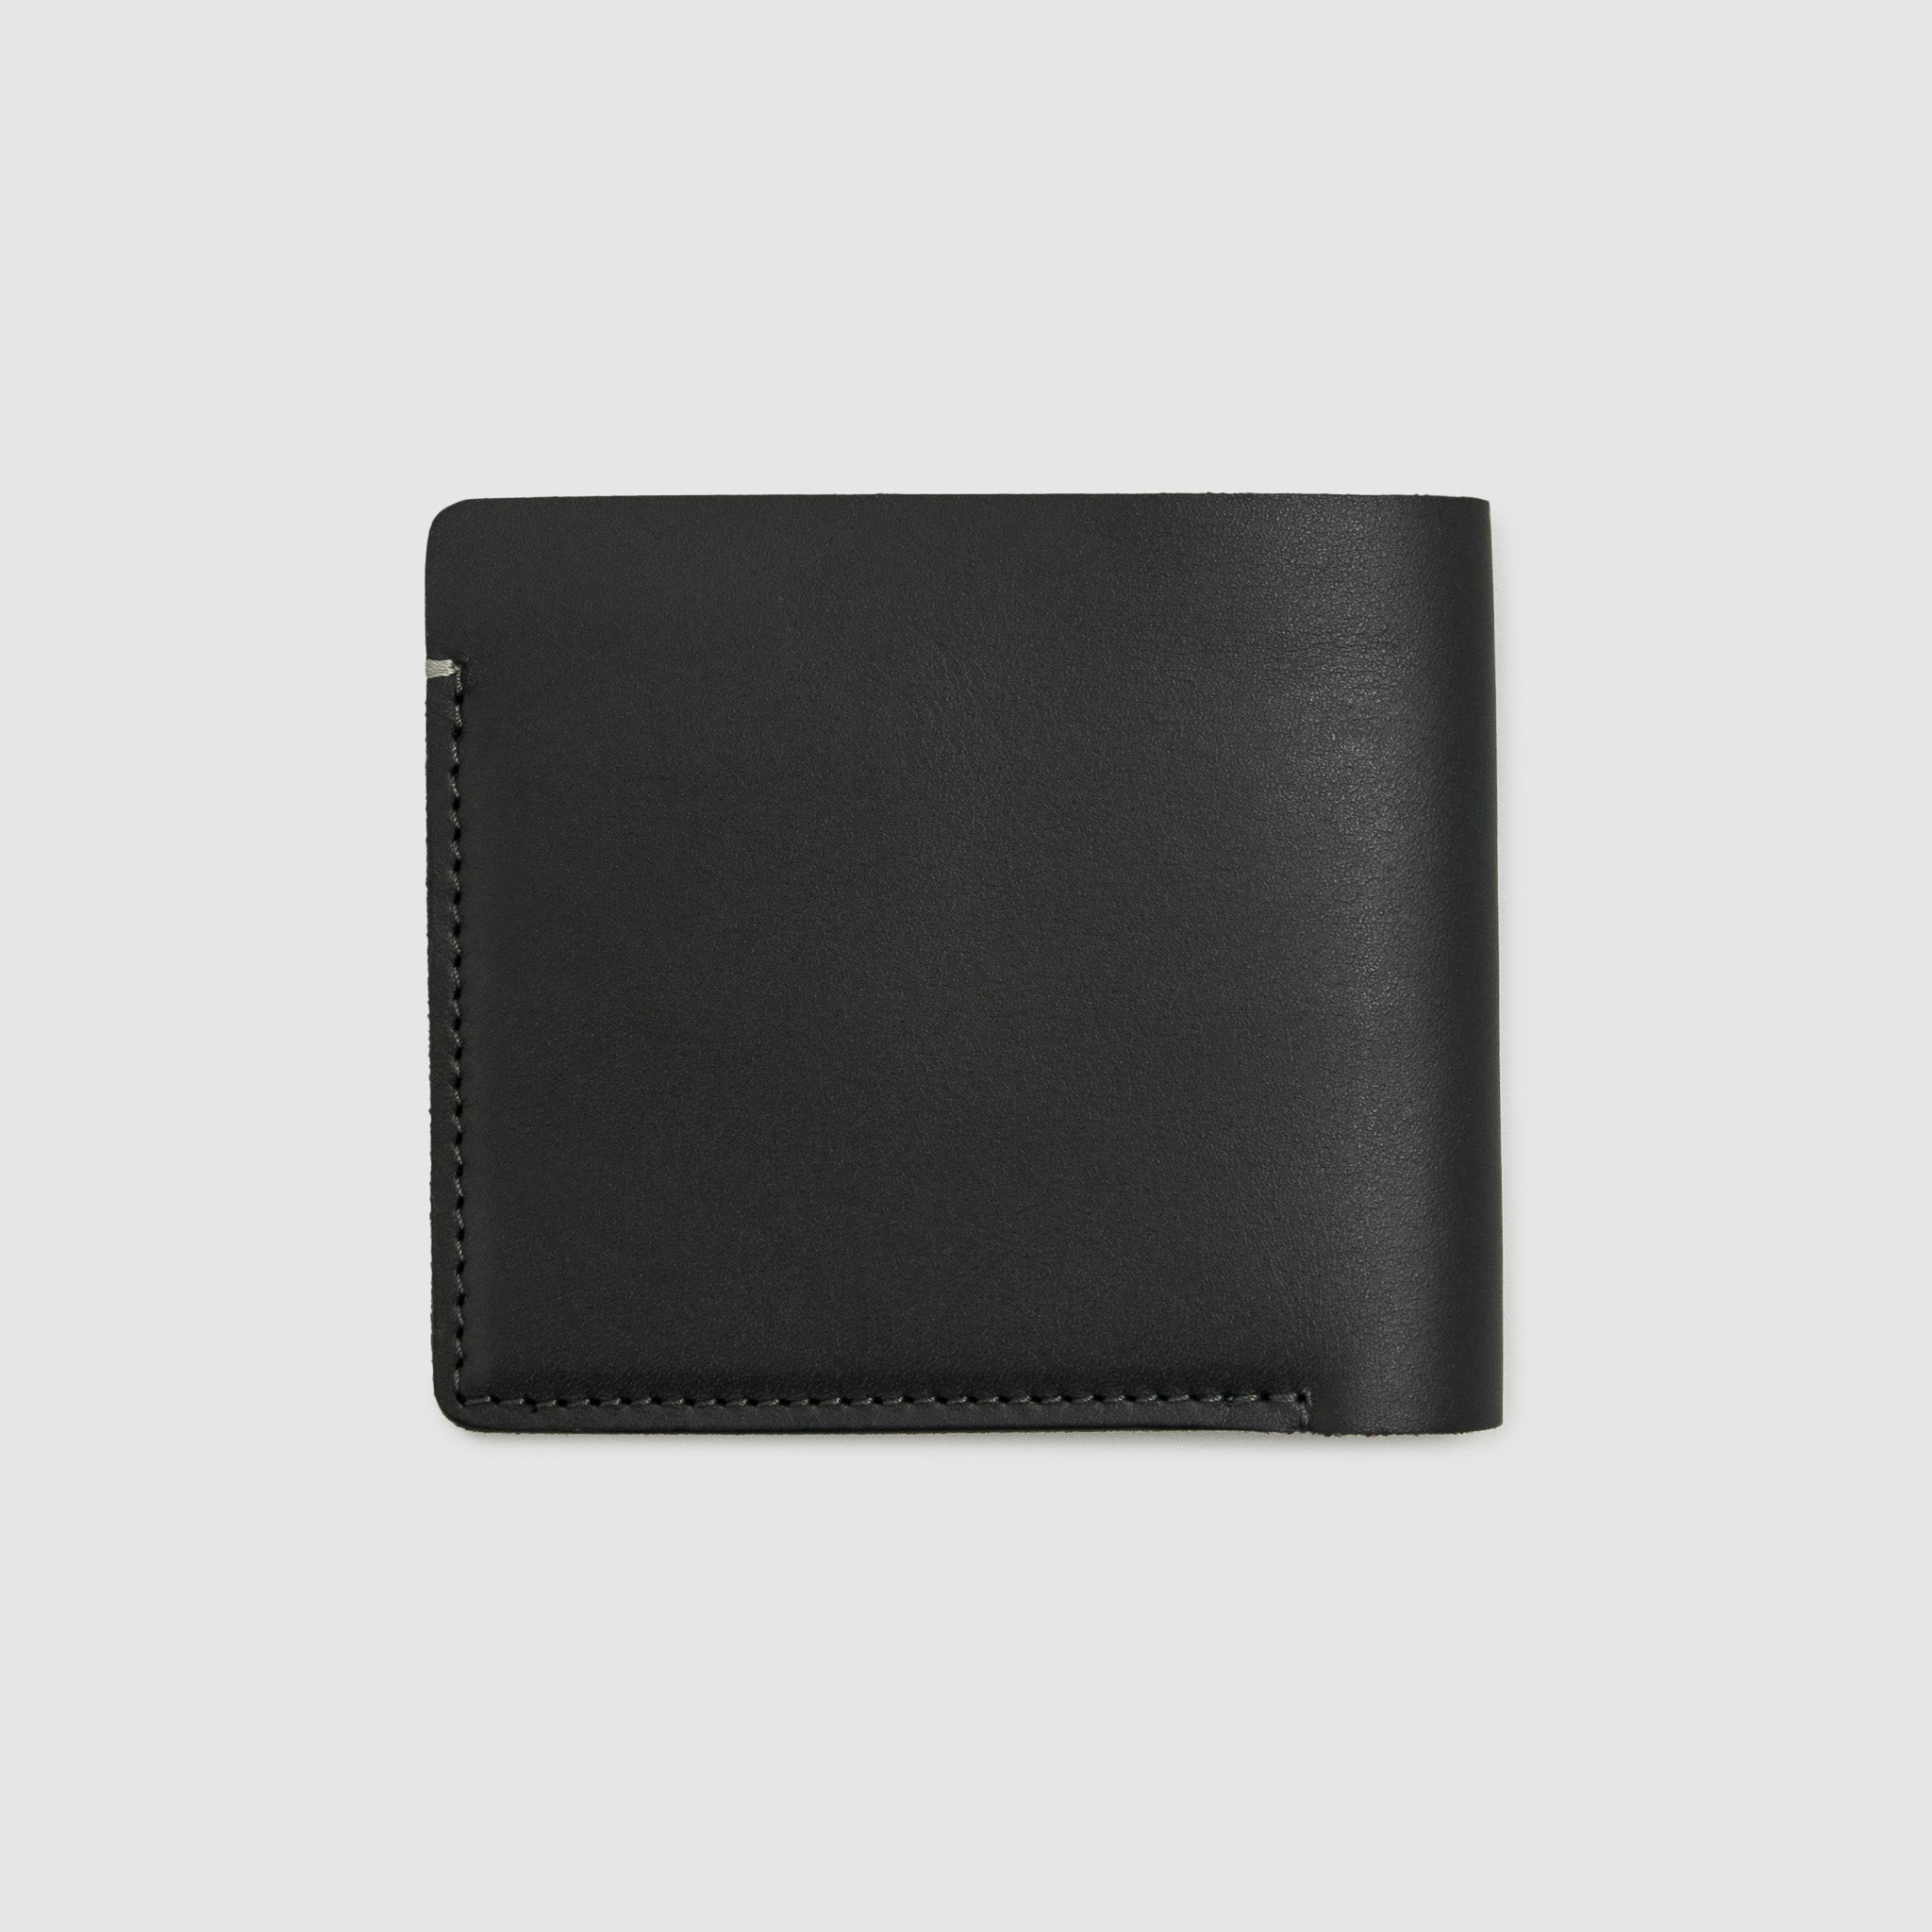 Anson Calder International Billfold Wallet RFID french calfskin leather _black